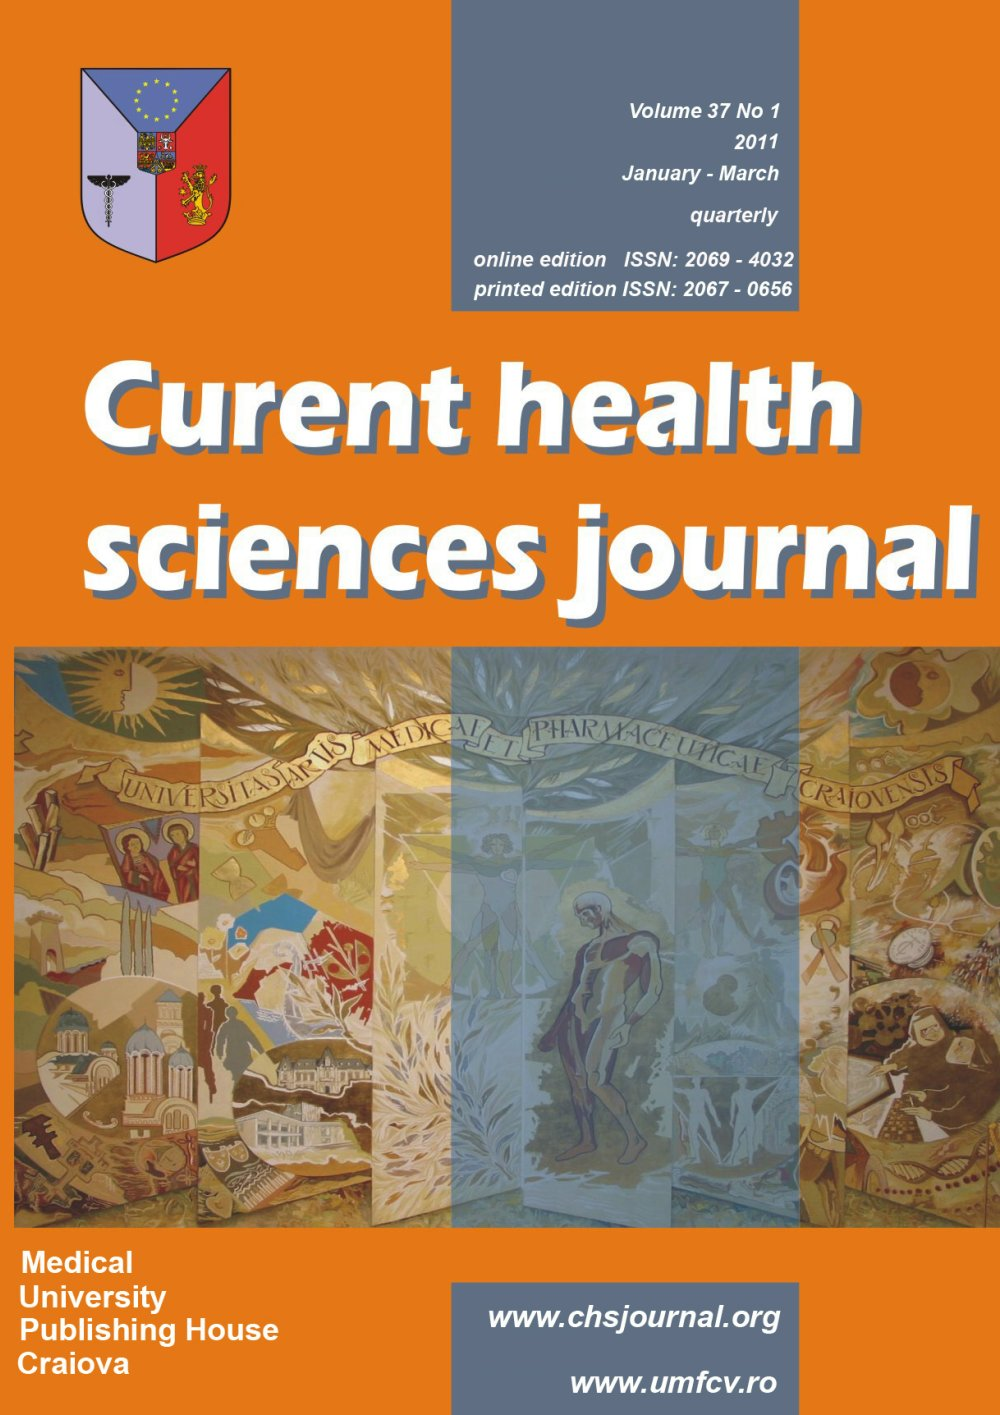 Current Health Sciences Journal, vol. 37 no. 1, 2011